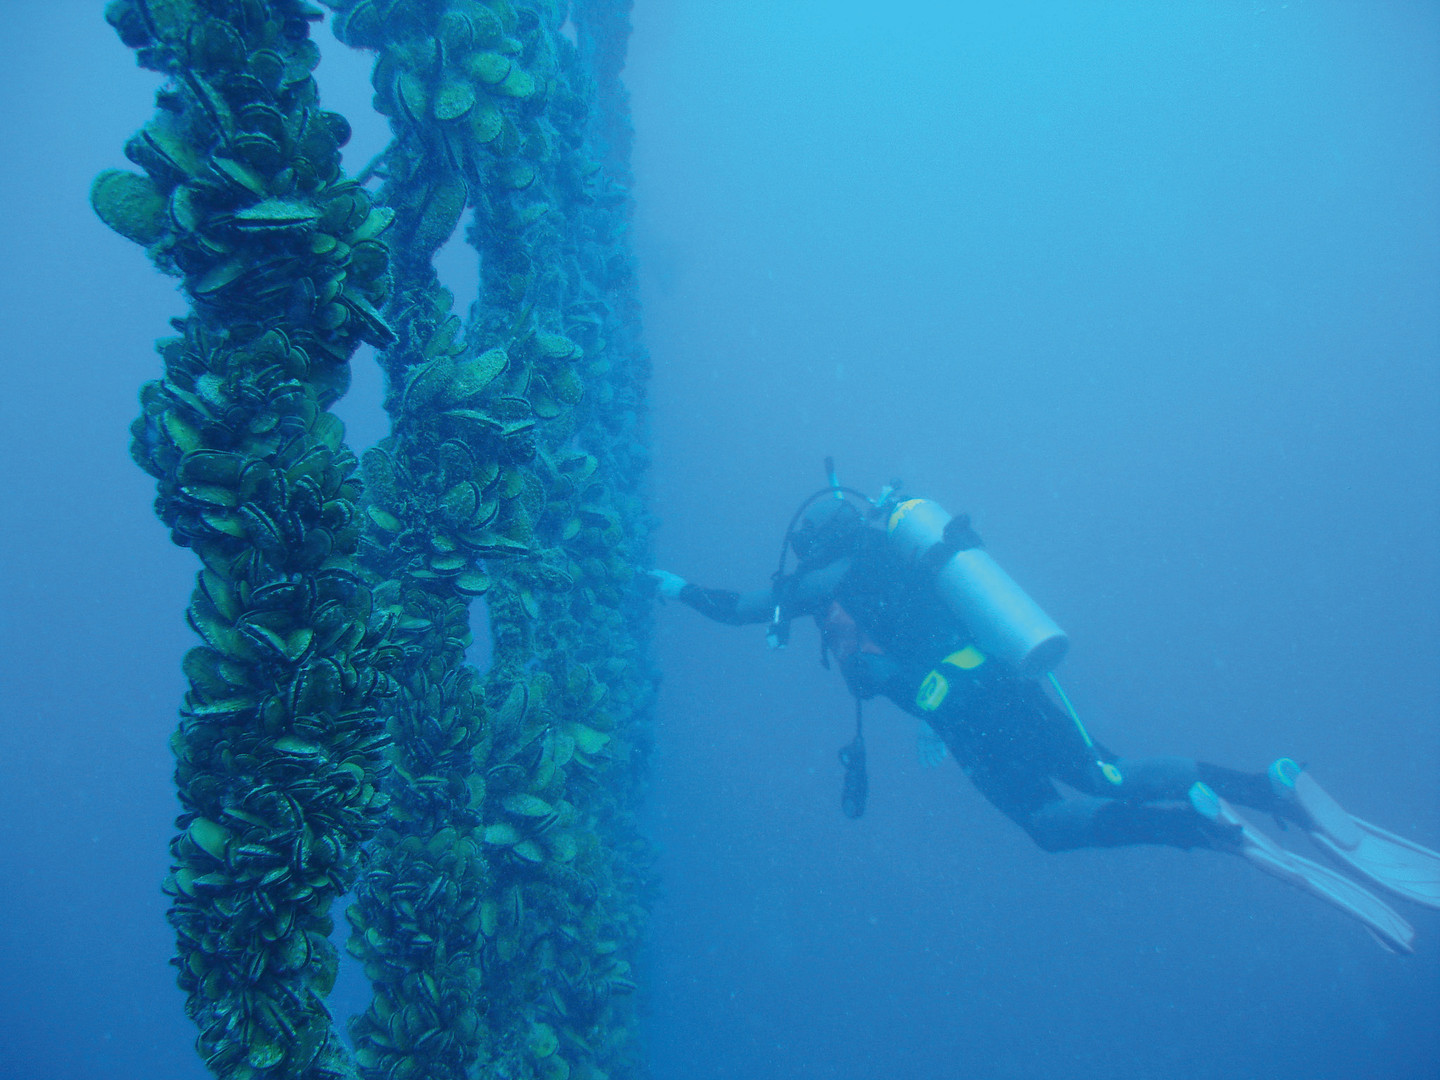 Cawthron diver mussels large file.jpg